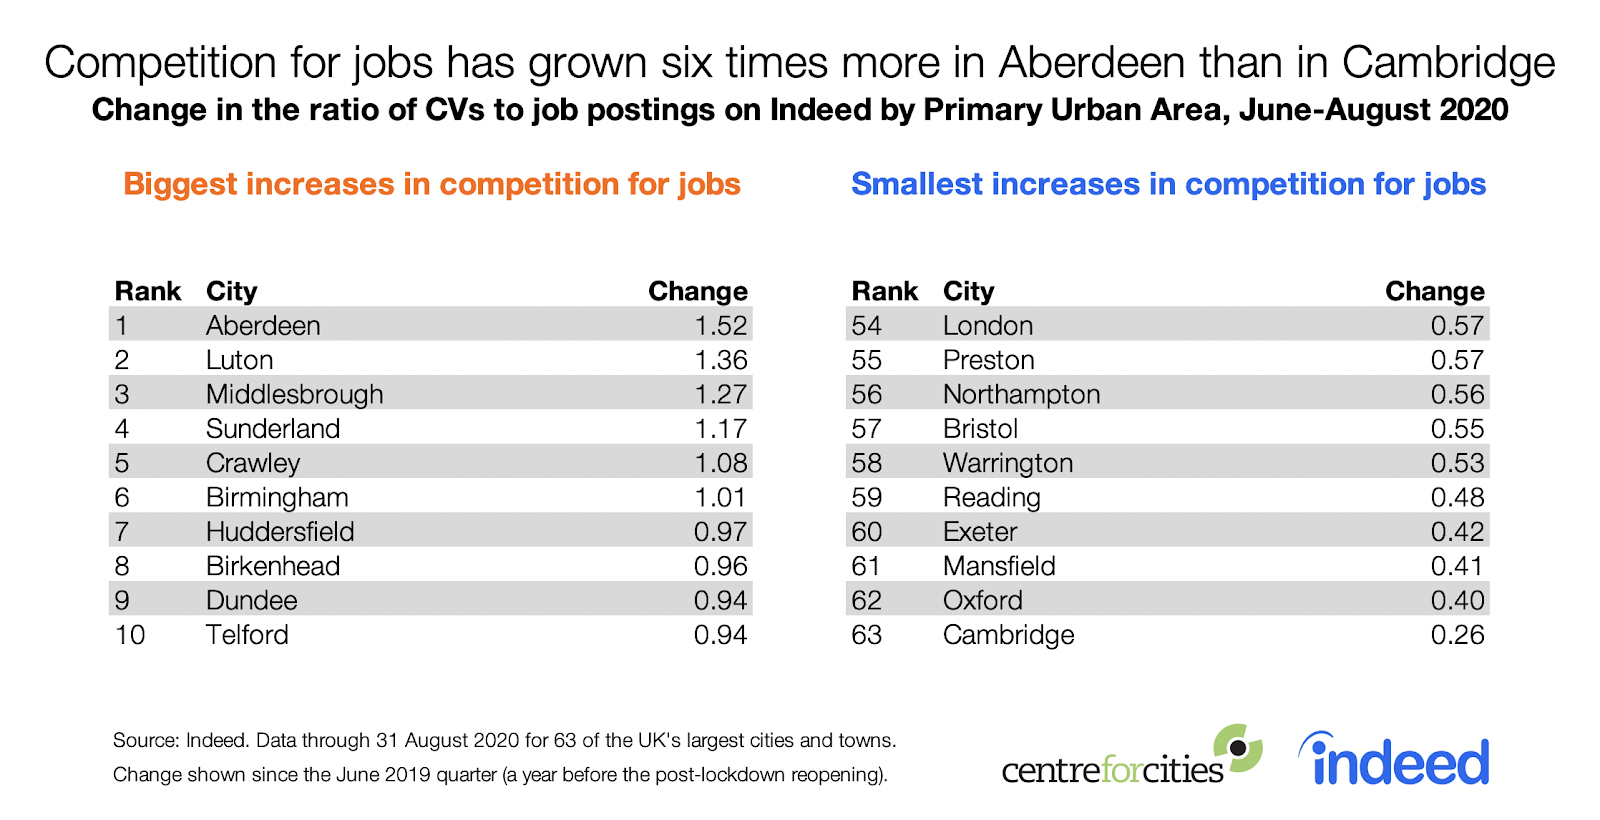 Table competition for jobs has grown six times more in Aberdeen than Cambridge